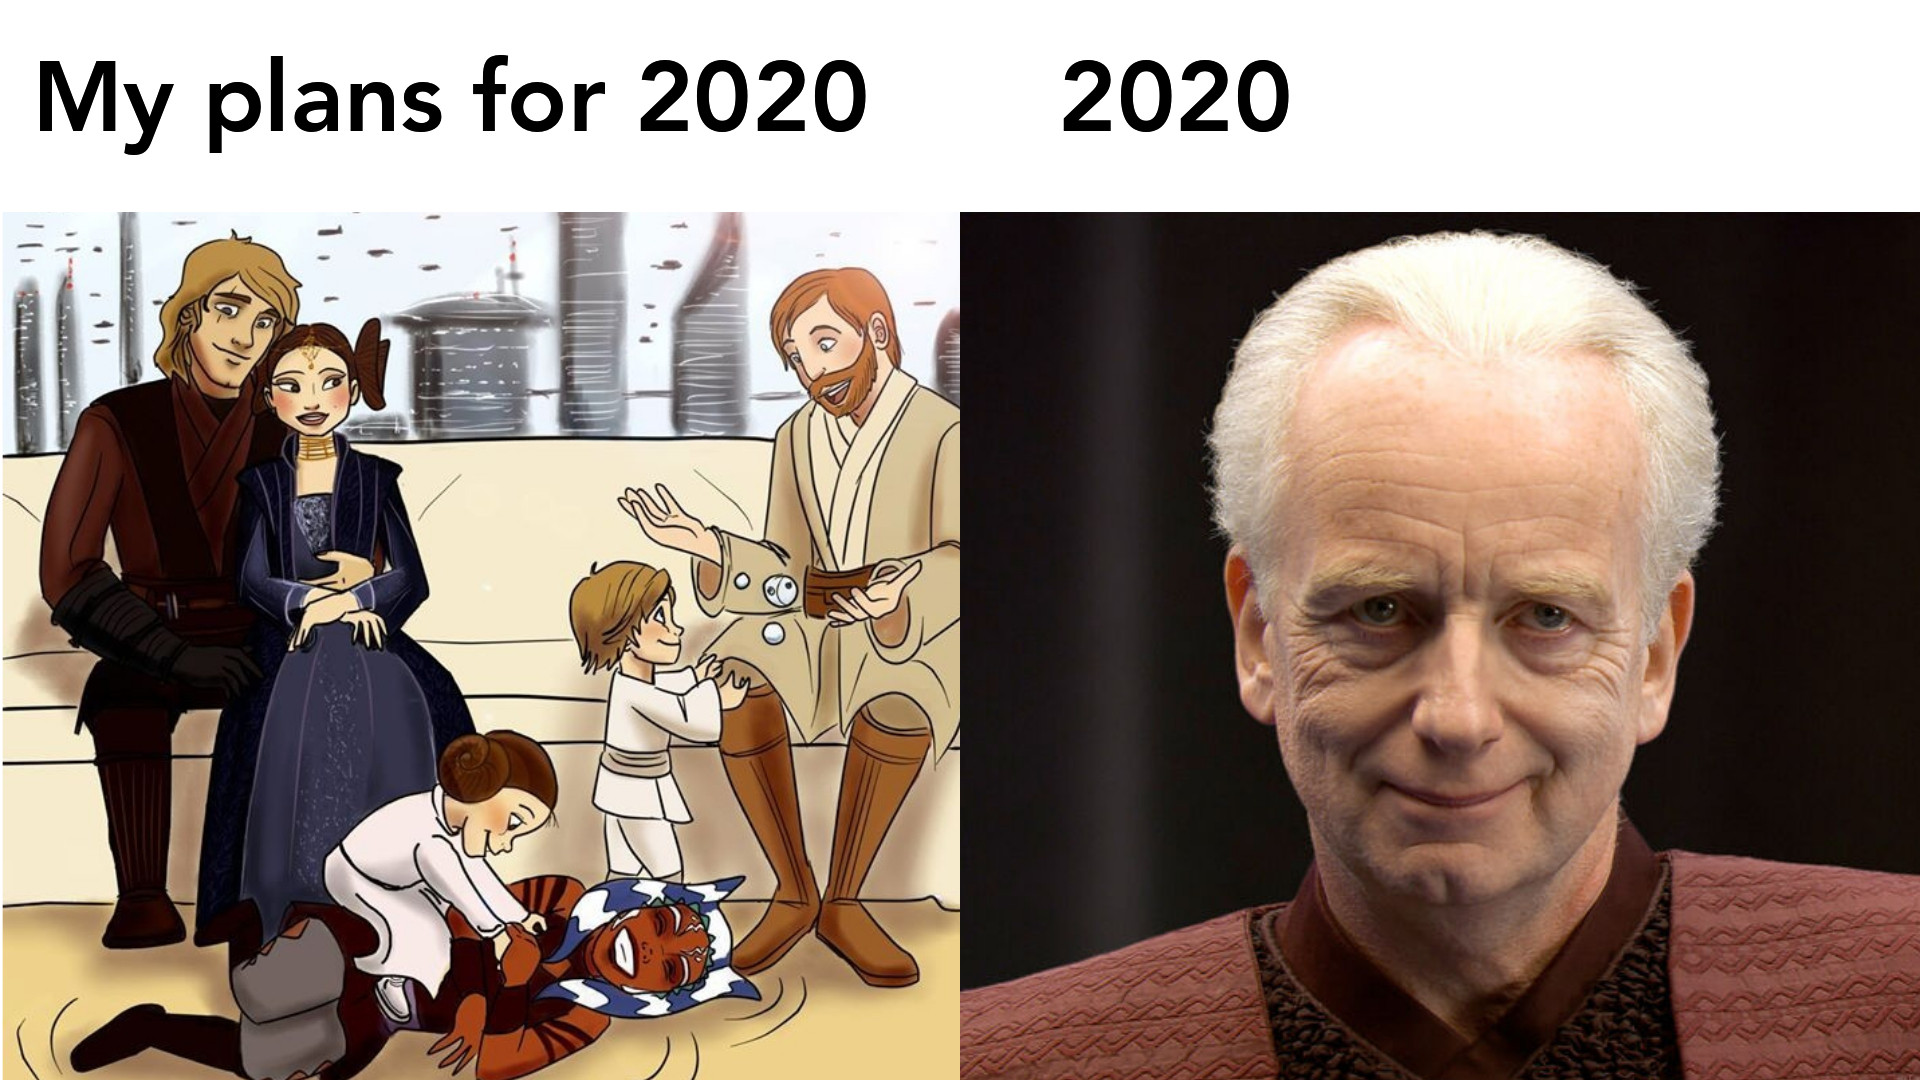 2020 plans meme, plans 2020 meme, making plans 2020 meme, 2020 meme, 2020 memes, funny 2020 meme, funny 2020 memes, meme about 2020, memes about 2020, hilarious 2020 meme, hilarious 2020 memes, funny memes 2020, funny meme 2020, funny meme about 2020, funny memes about 2020, 2020 funny meme, 2020 funny memes, meme funny 2020, memes funny 2020, 2020 funny meme, 2020 funny memes, hilarious memes about 2020, hilarious meme about 2020